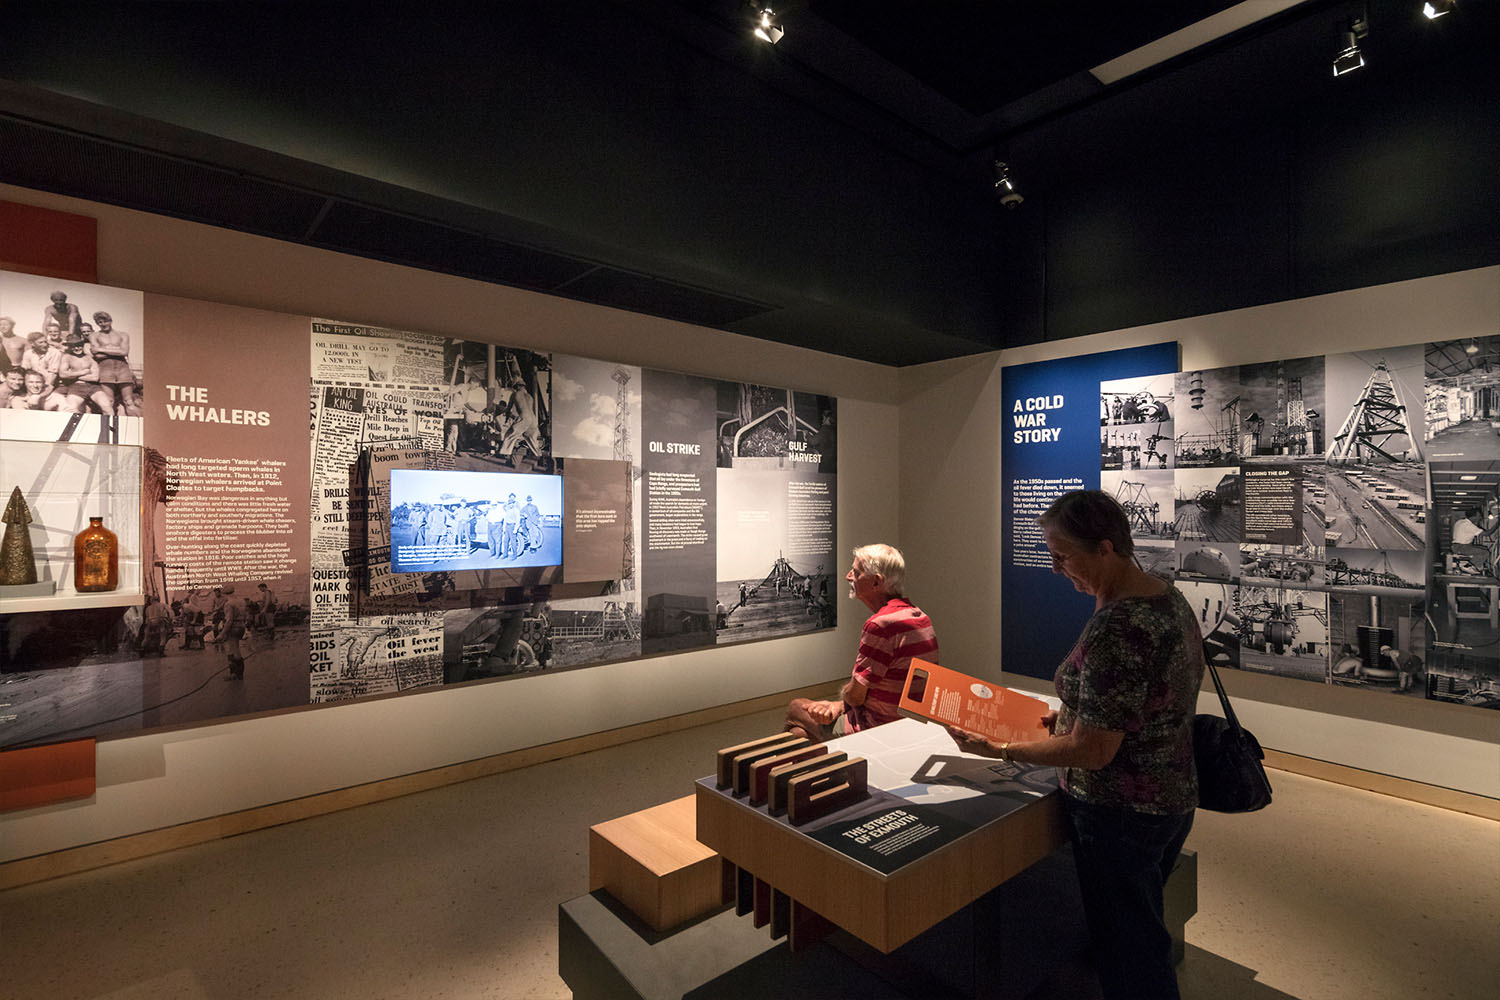 Ningaloo Centre. Personal stories of bravery and hardship throughout the history of Exmouth are evoked via interpretive installations and historical imagery.